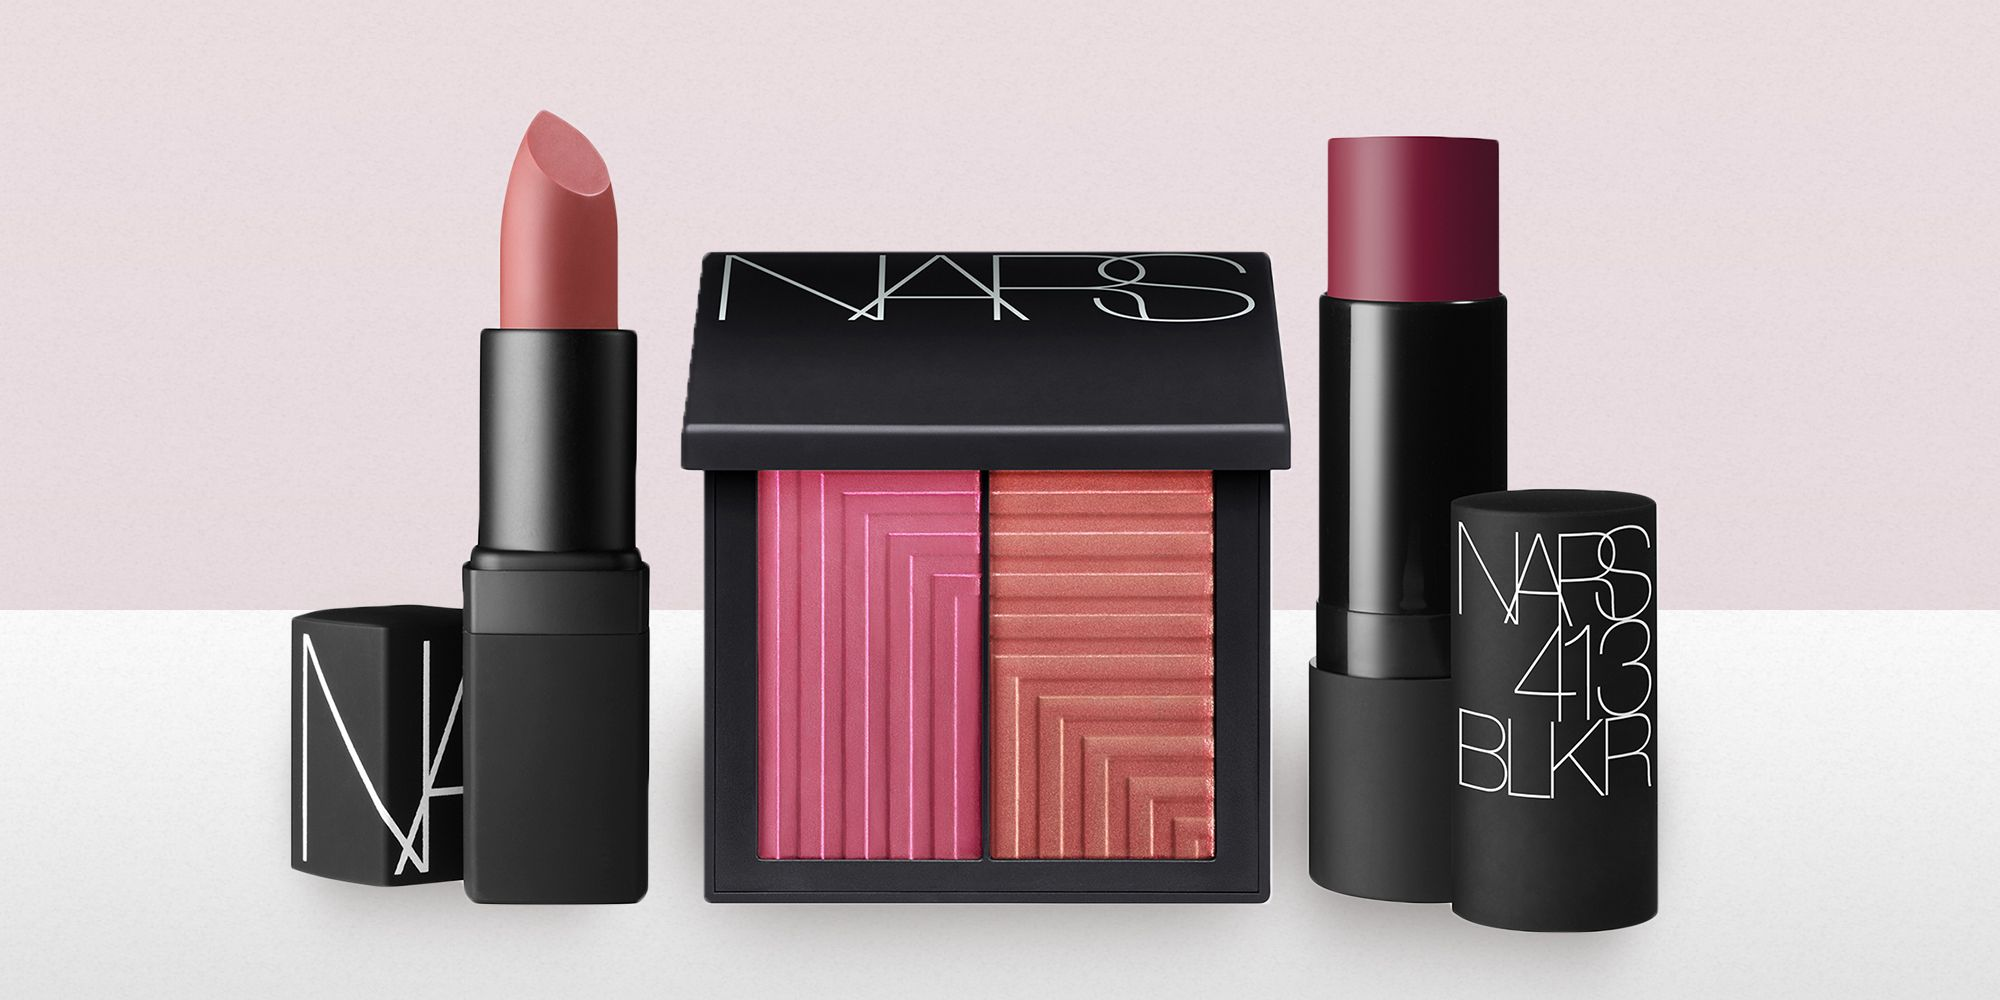 2018 Best Nars Makeup Products 10 Top